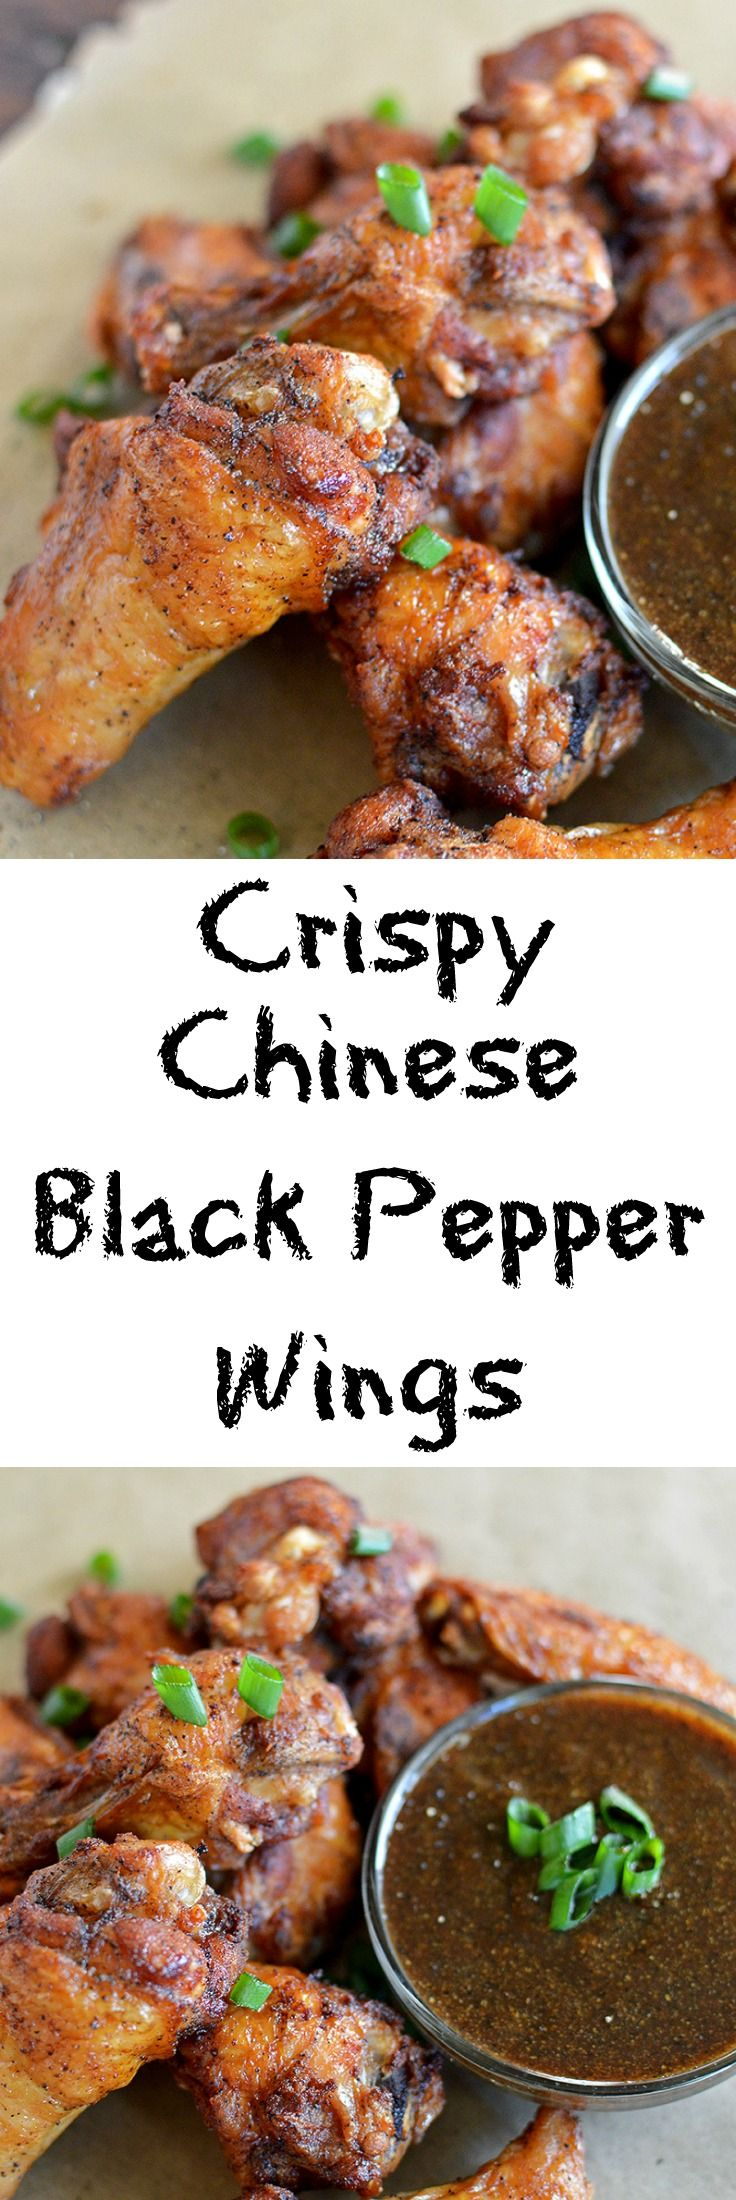 Crispy Chinese Black Pepper Chicken Wings….. A spin on the classic Chinese black peppered chicken dish. : savoryspicerack